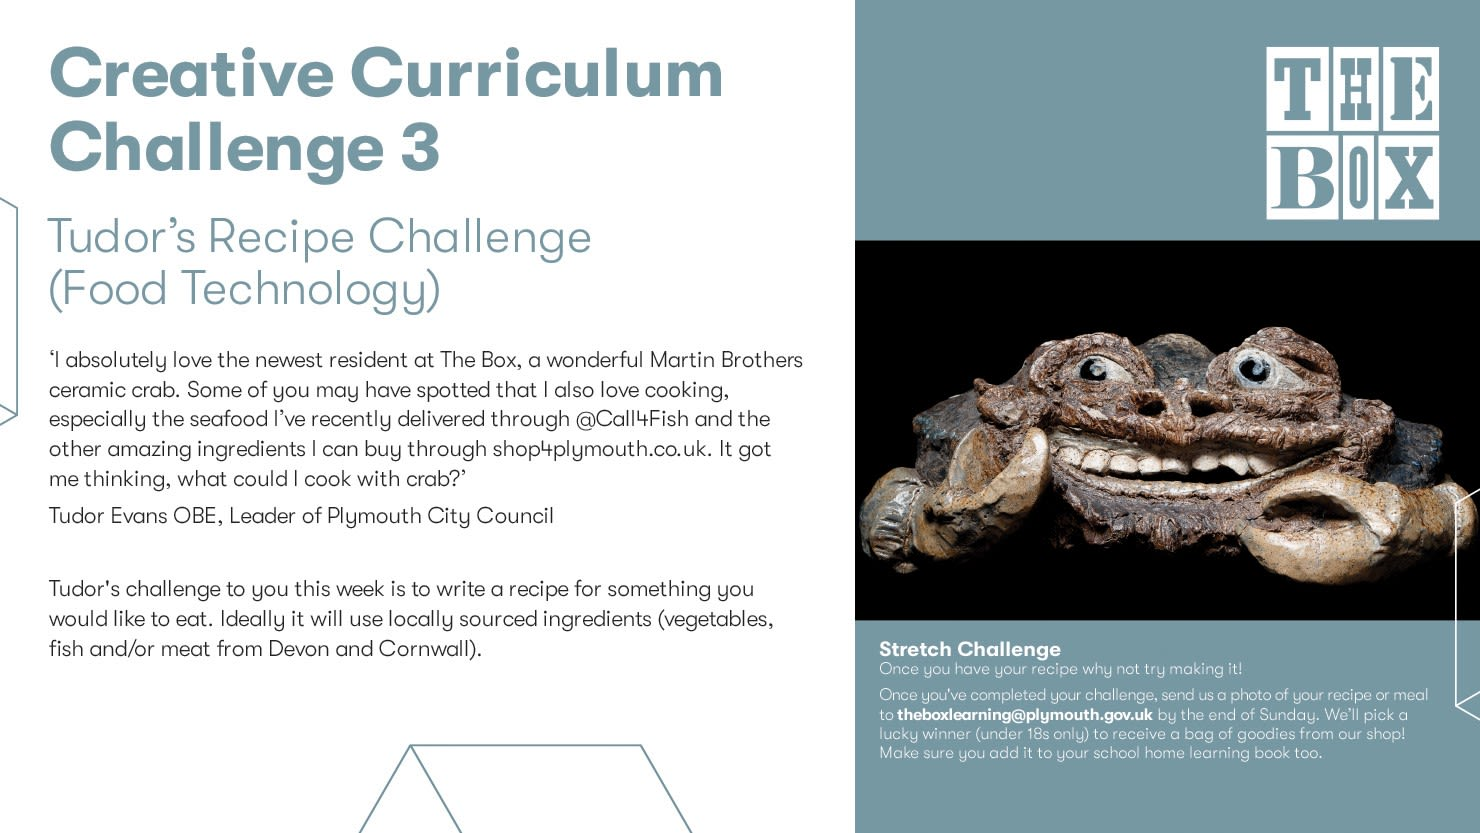 Graphic for The Box's Creative Curriculum Challenge 3